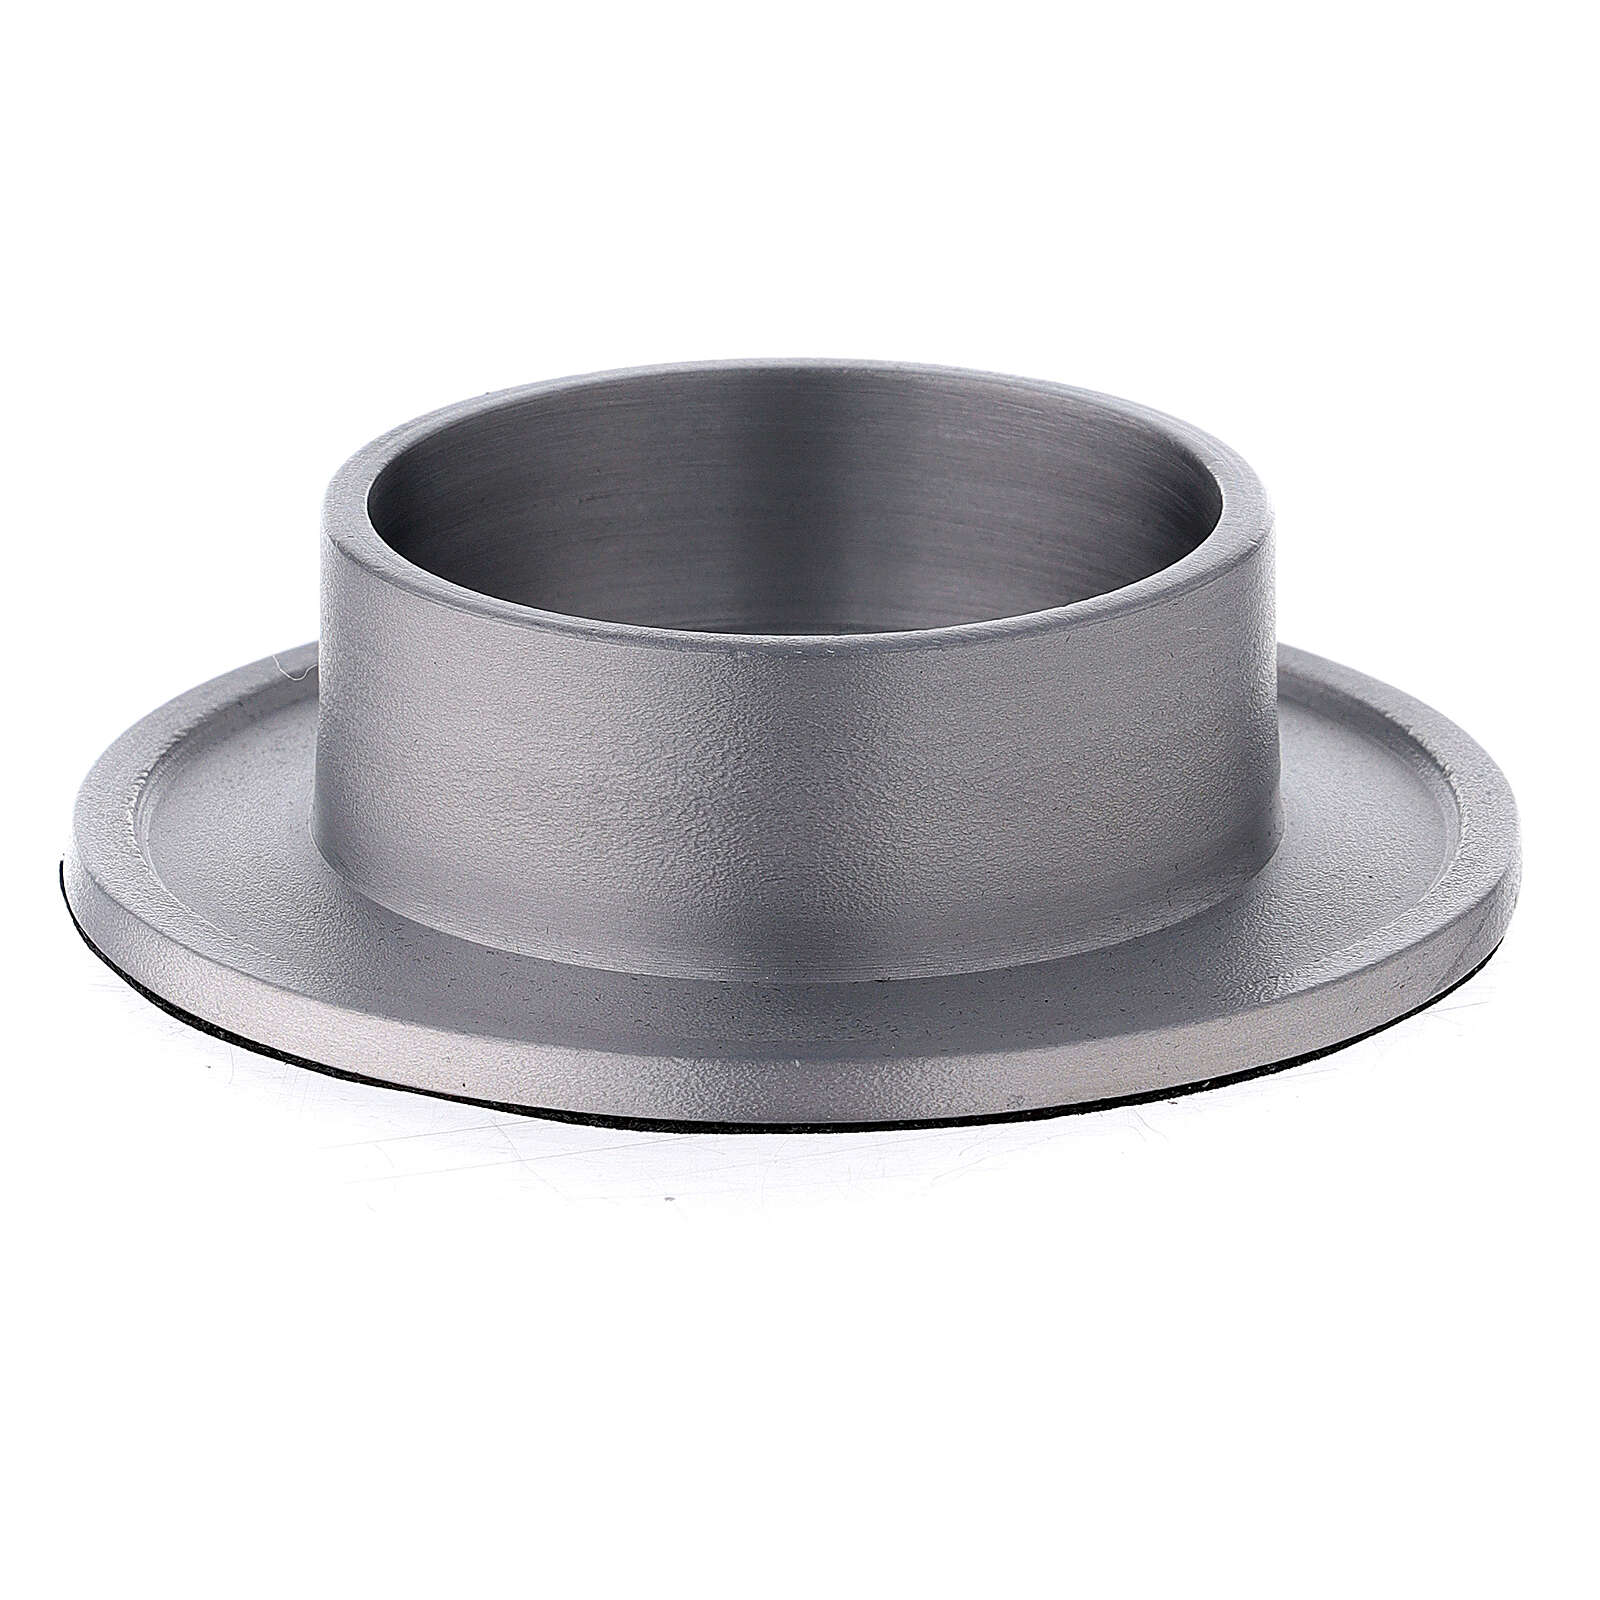 Aluminium candle holder with satin finish 2 1/2 in 3